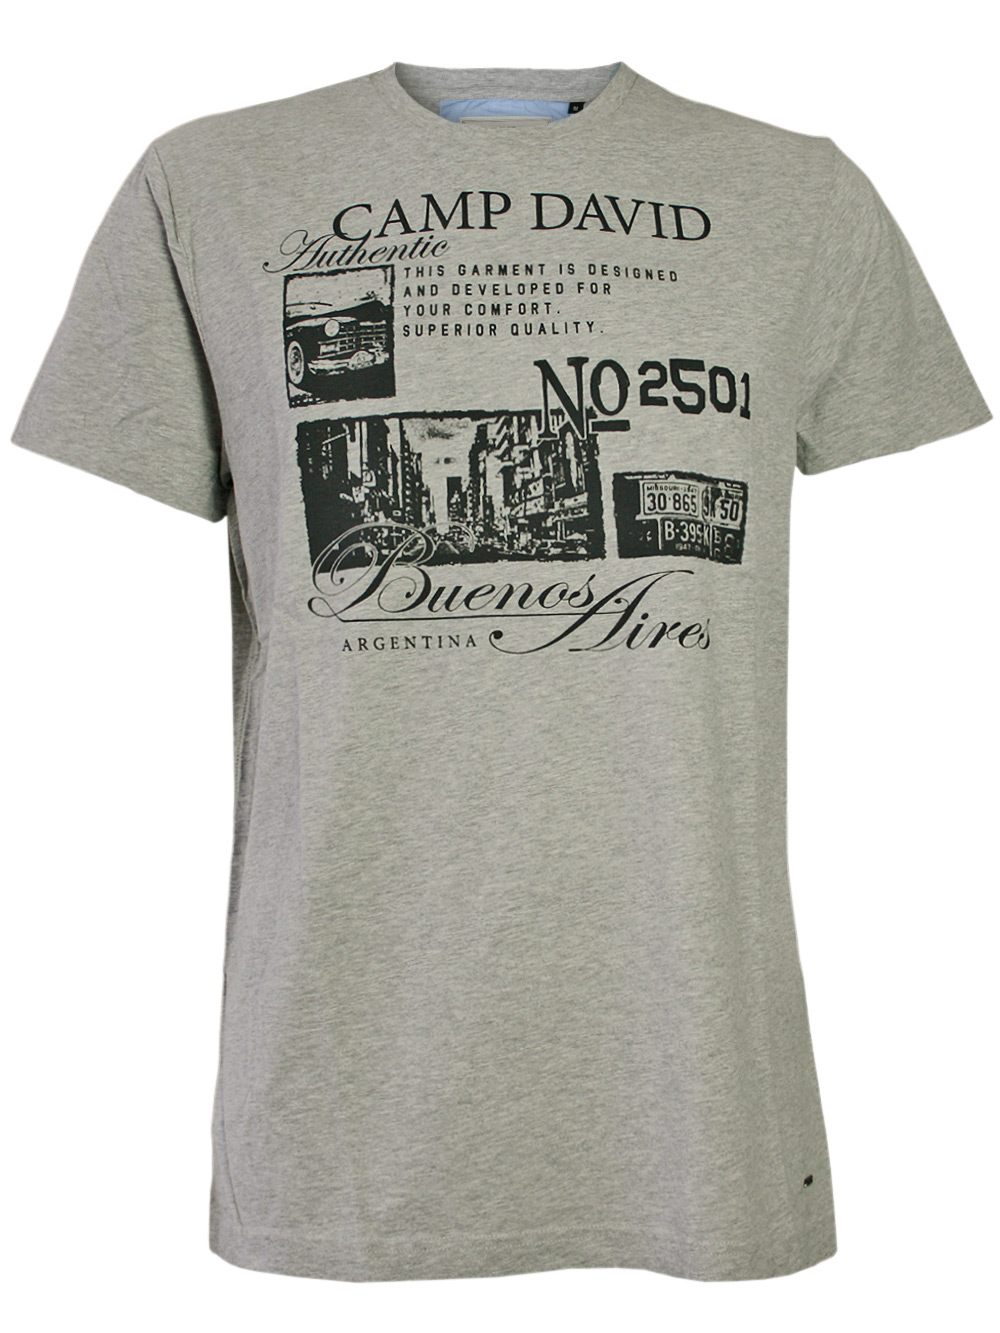 camp david poloshirt rot herren t shirt poloshirt freizeitshirt. Black Bedroom Furniture Sets. Home Design Ideas